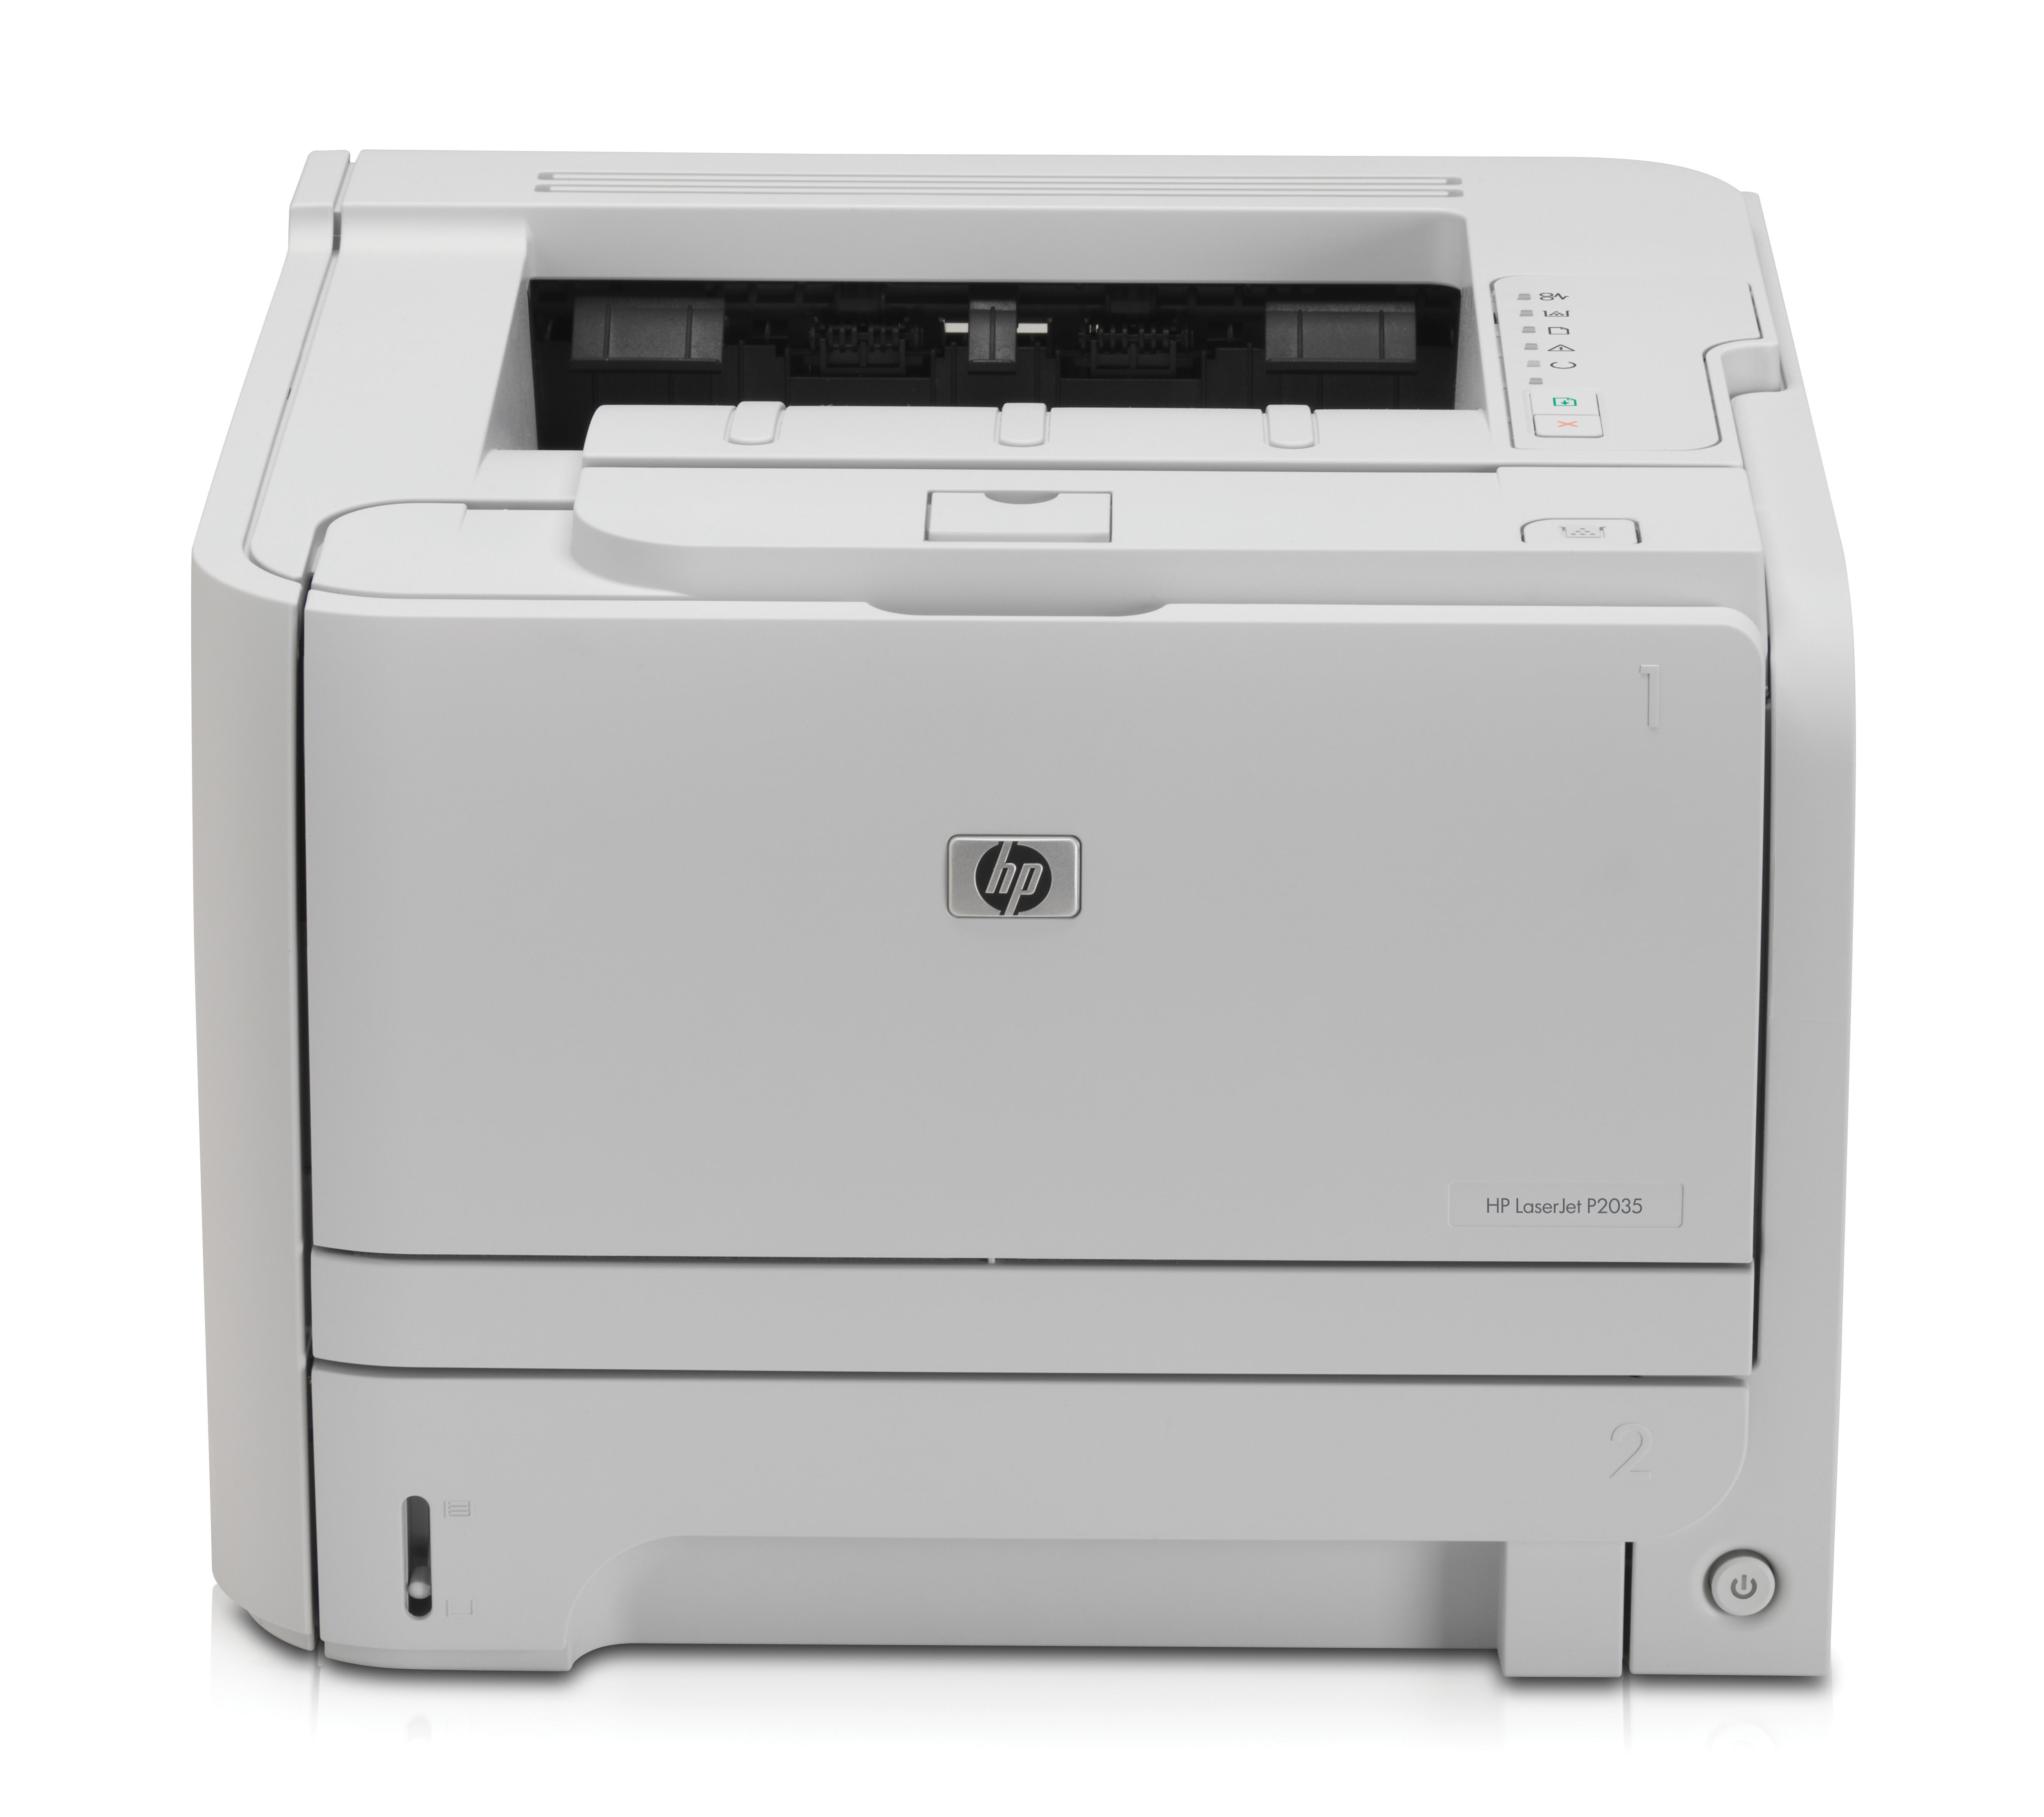 HP LaserJet P2035 A4 Mono Printer CE461A#ABY - Refurbished